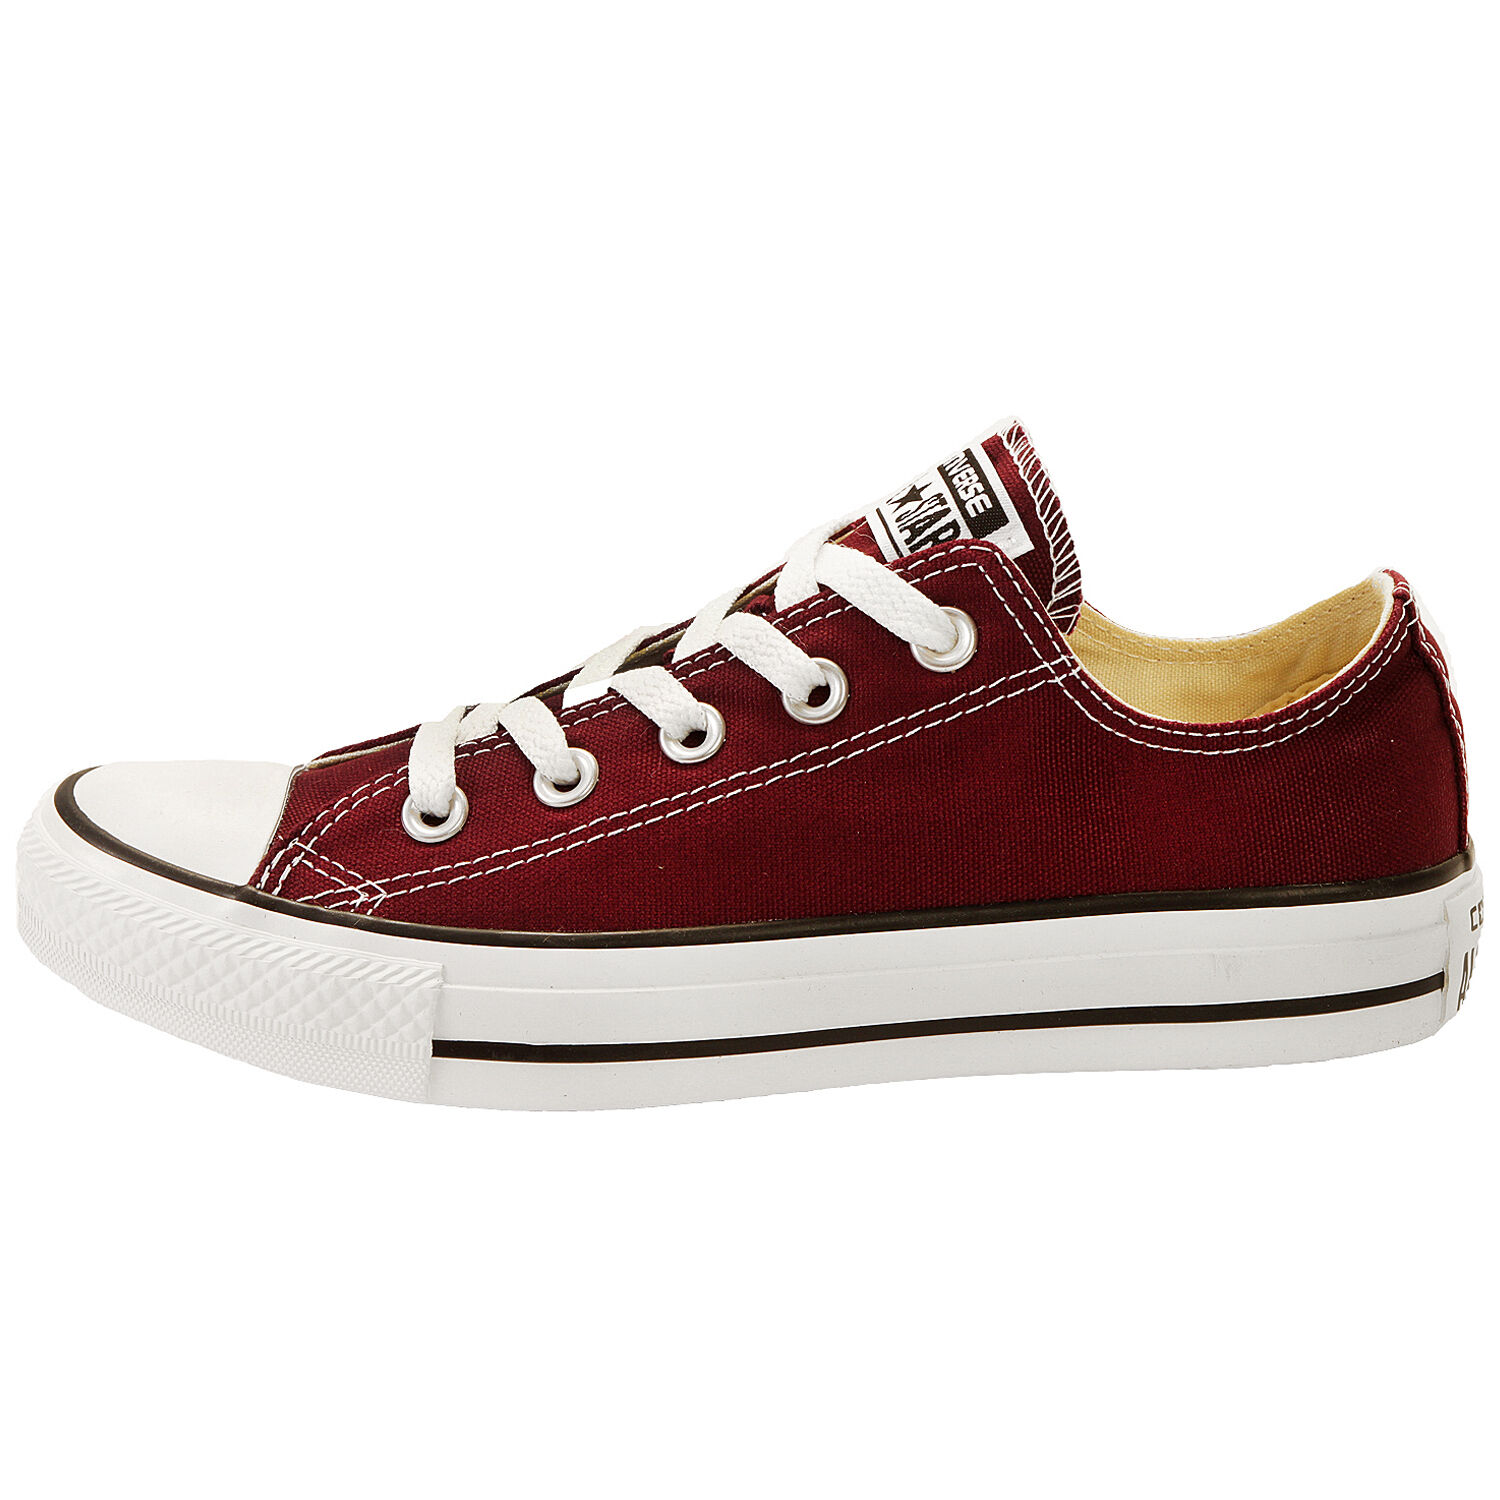 Converse All Star Chuck Taylor Burgundy Low Top Canvas New In Box 139794F